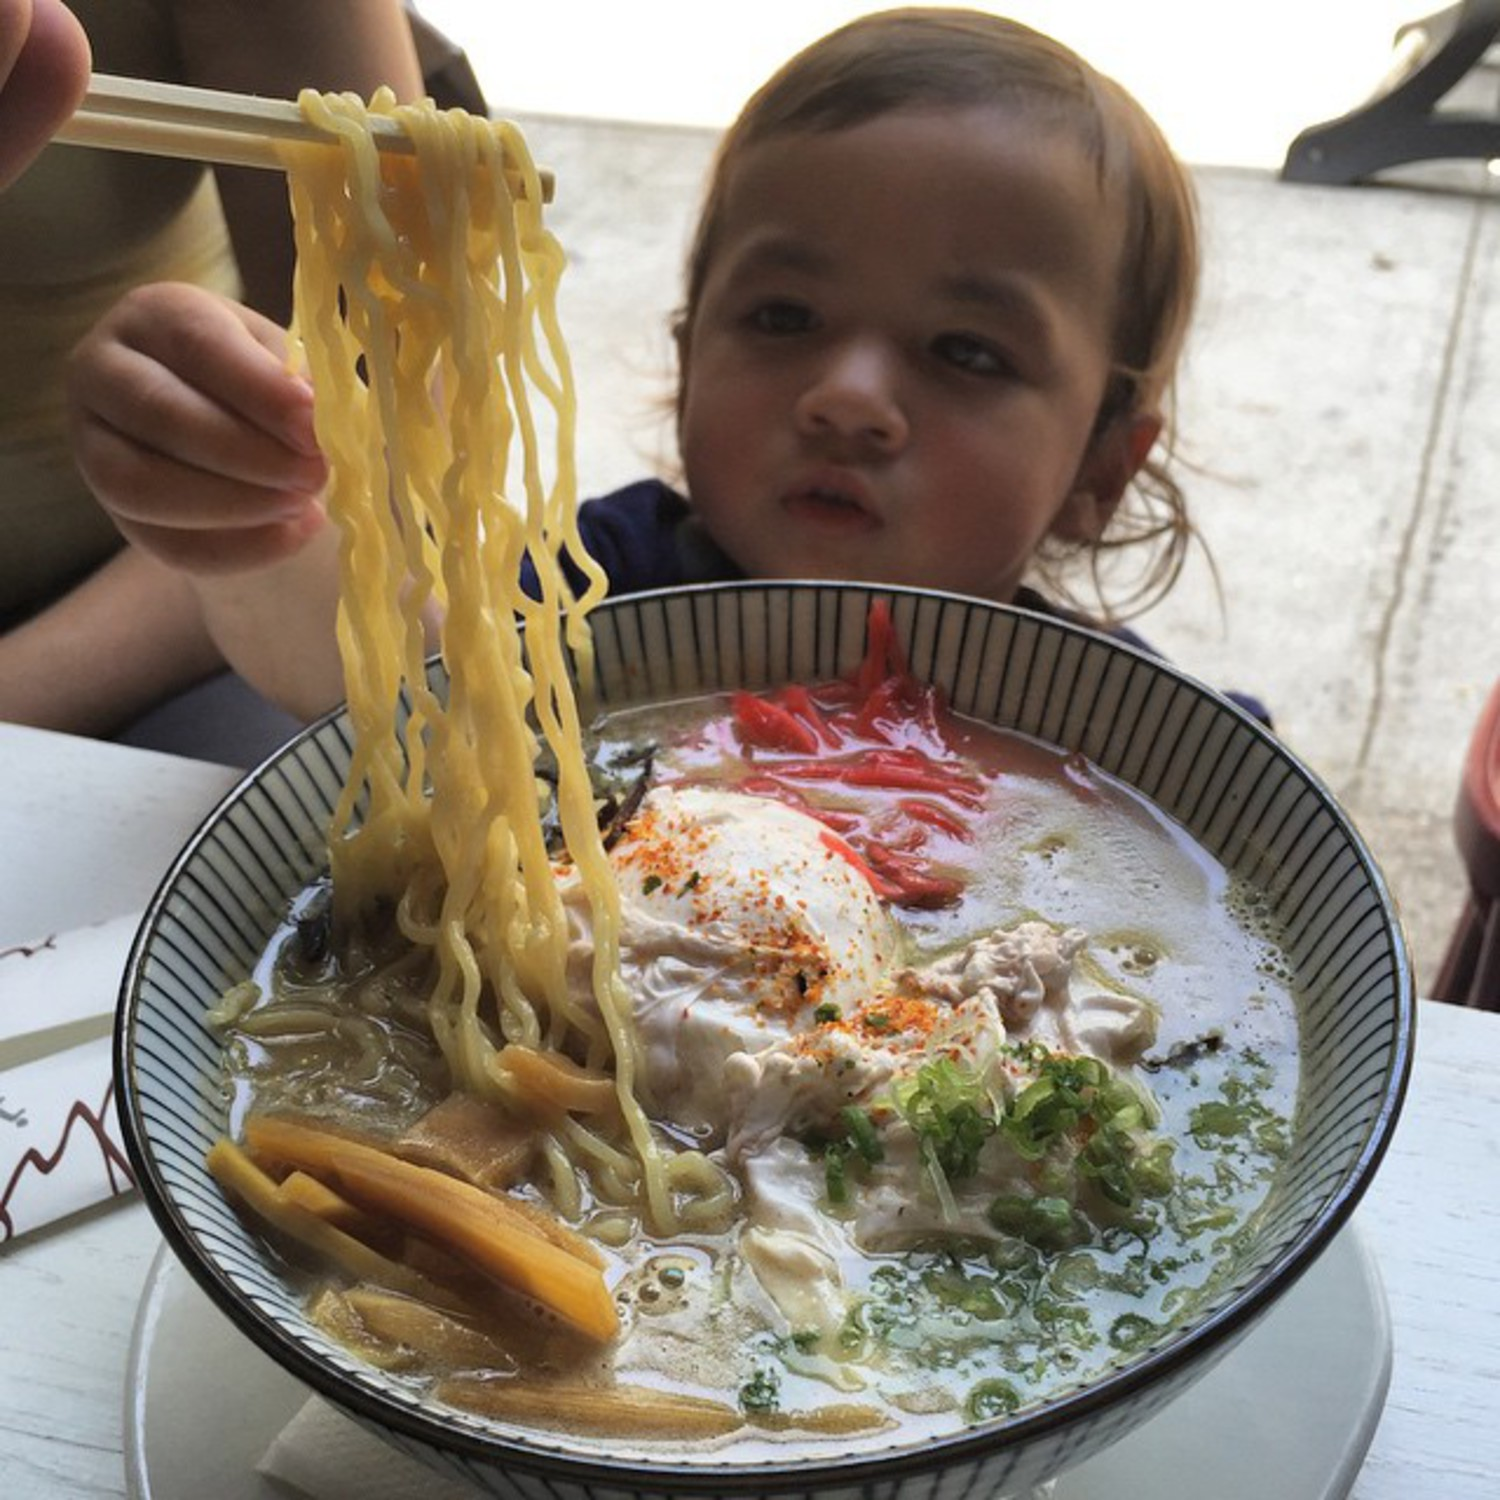 The Breakfast #Ramen at @cherryizakaya is pretty awesome #👶🏽🍜 #cherryizakaya #latergram #foodbabylovescherryizakaya